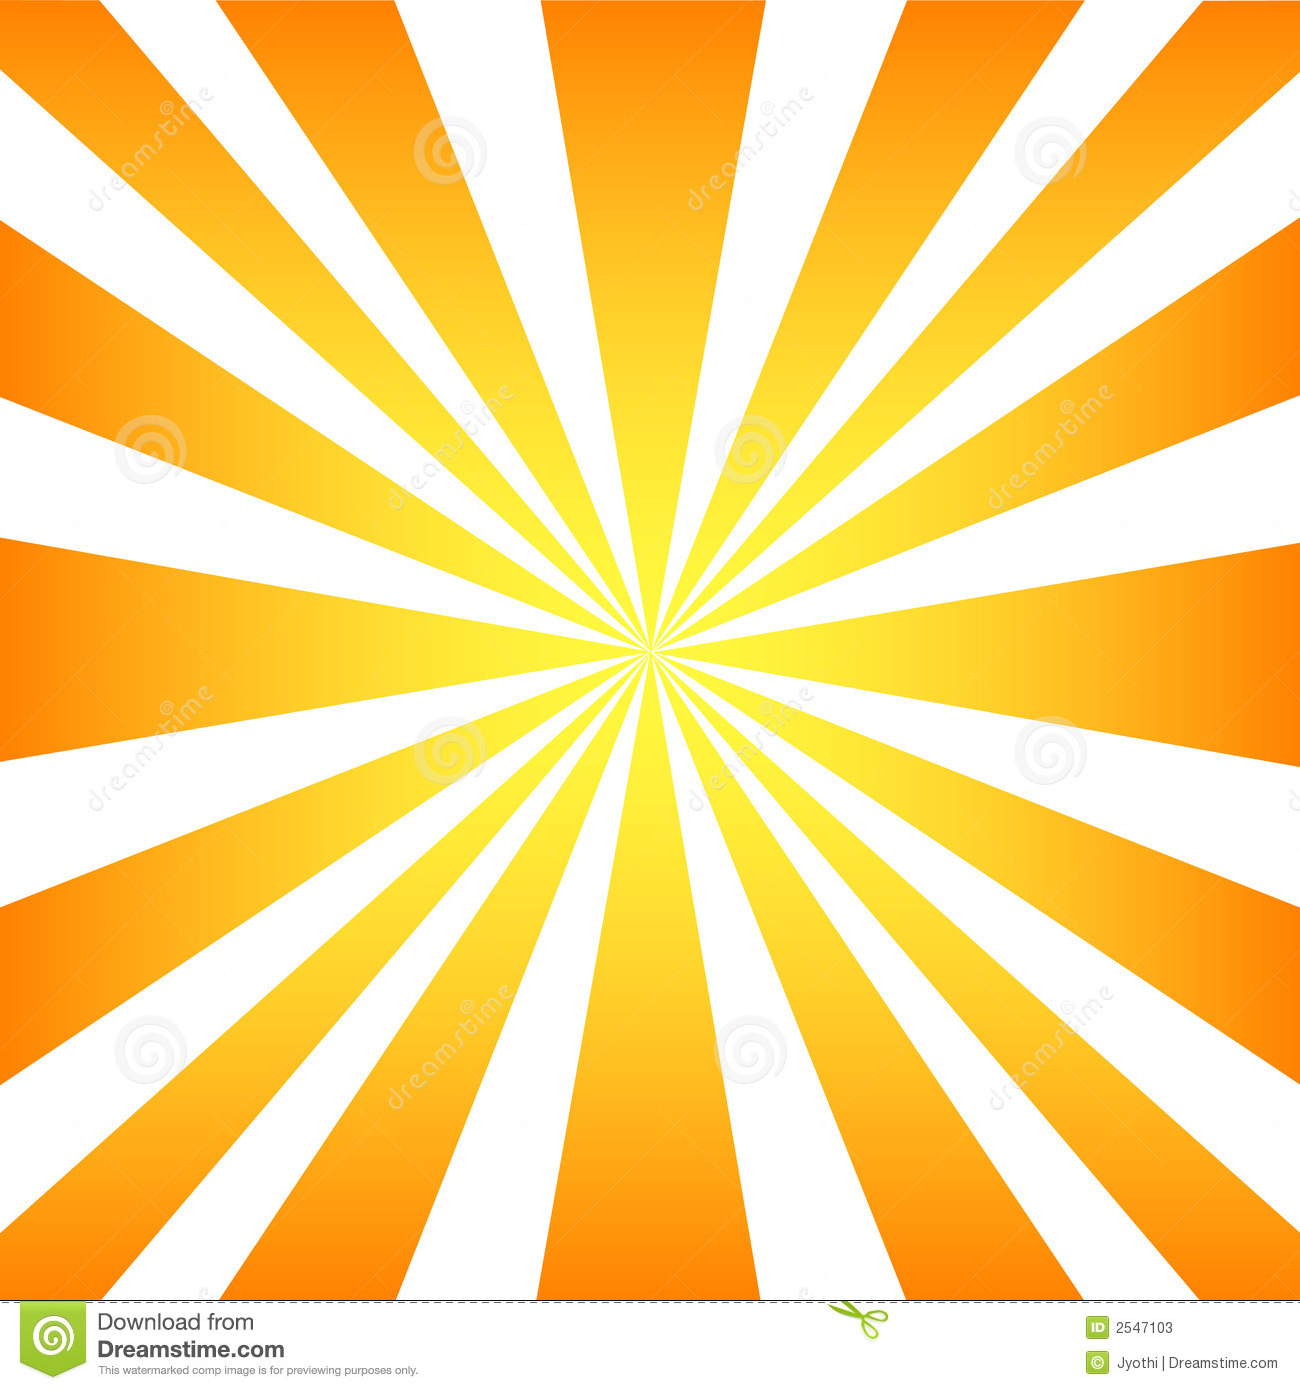 Rays clipart.